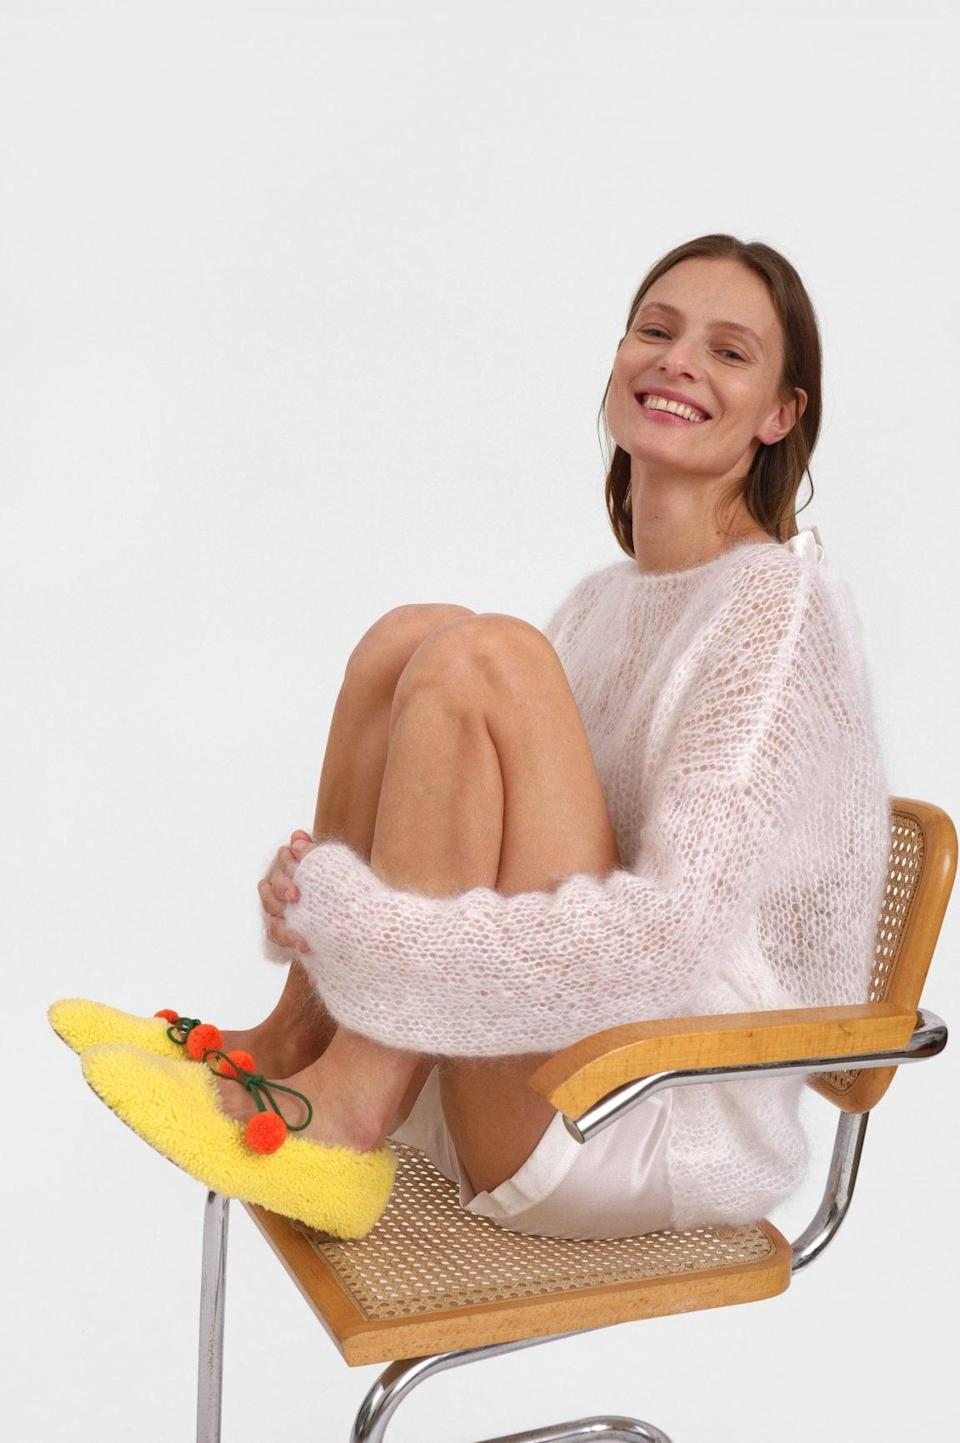 """<p>Though we first collected house slippers because we were spending so much time at home, those that can <a href=""""https://www.popsugar.com/fashion/cute-house-slippers-outfit-ideas-47954130"""" class=""""link rapid-noclick-resp"""" rel=""""nofollow noopener"""" target=""""_blank"""" data-ylk=""""slk:transition outside"""">transition outside</a> will stay in heavy rotation. The whole idea of a comfy shoe to quickly run an errand in isn't far-fetched any time of the year, so expect these to stick around. They'll be reinvented in colors and luxe fabrics like velvet and shearling, but they all have substantial soles.</p> <p><span>Sleeper Lulu Shearling Slippers</span> ($290)</p>"""